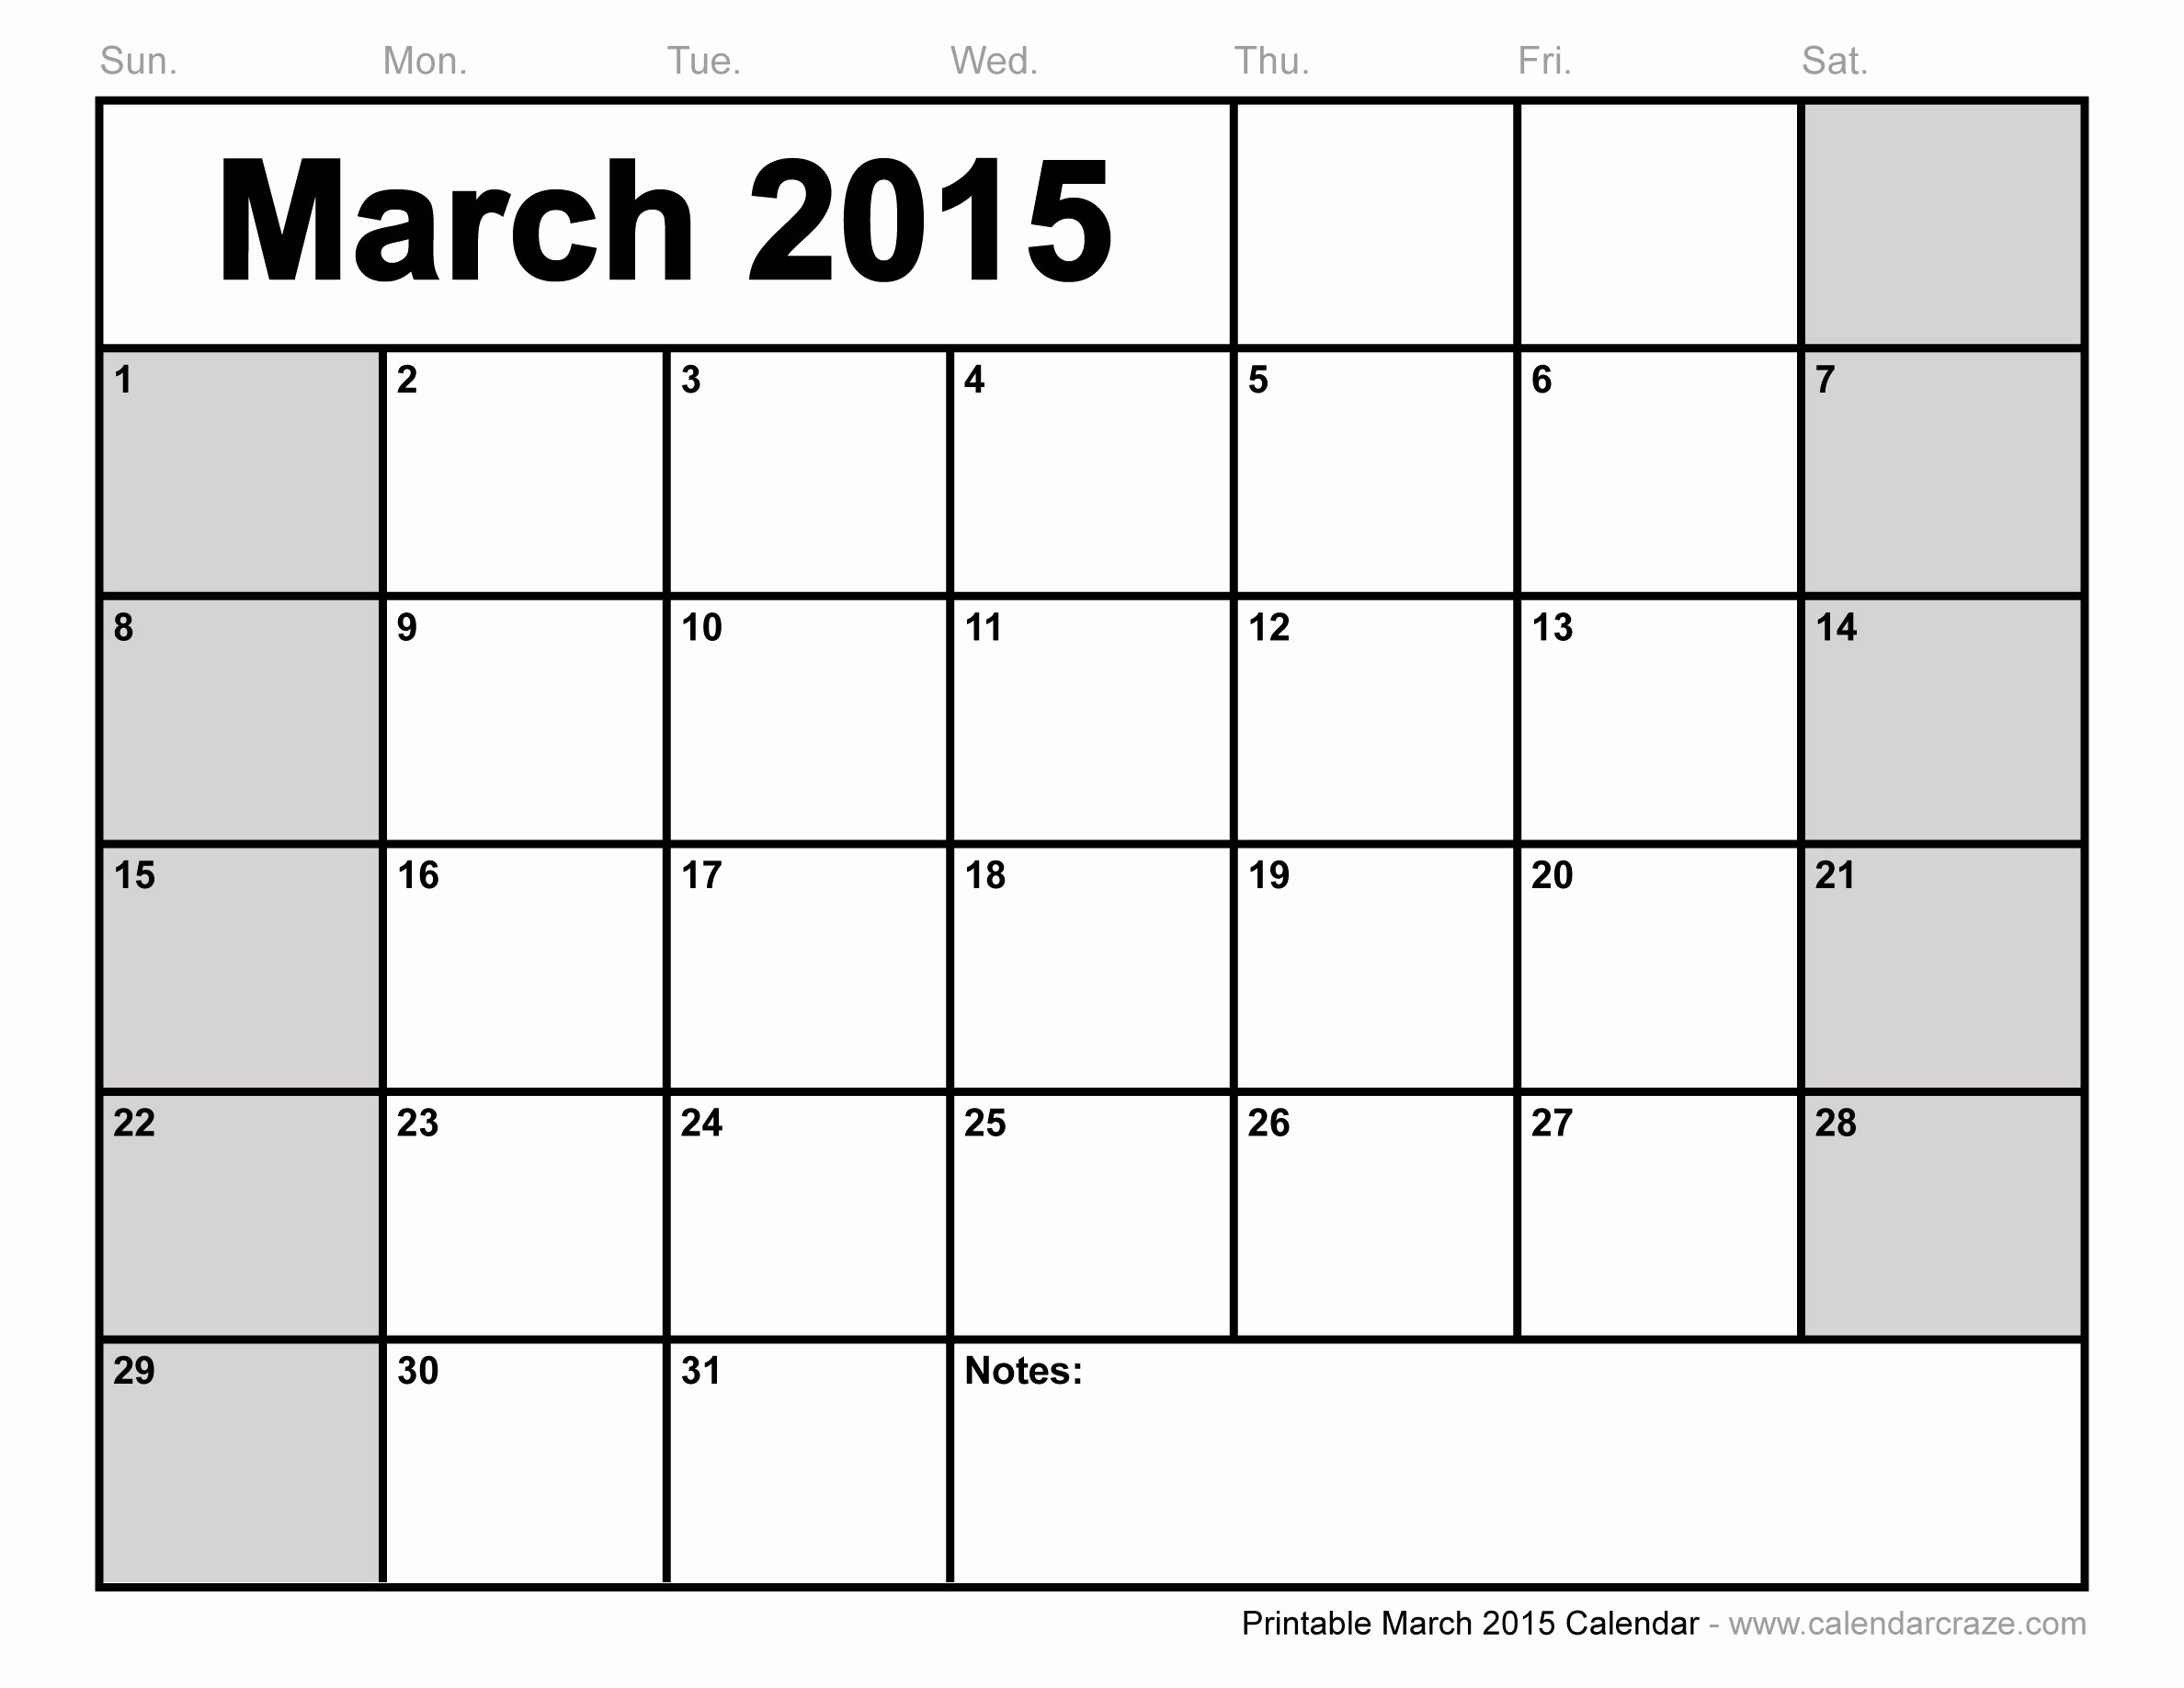 Month by Month Calendar Template Elegant 2015 Calendar Printable by Month – 2017 Printable Calendar